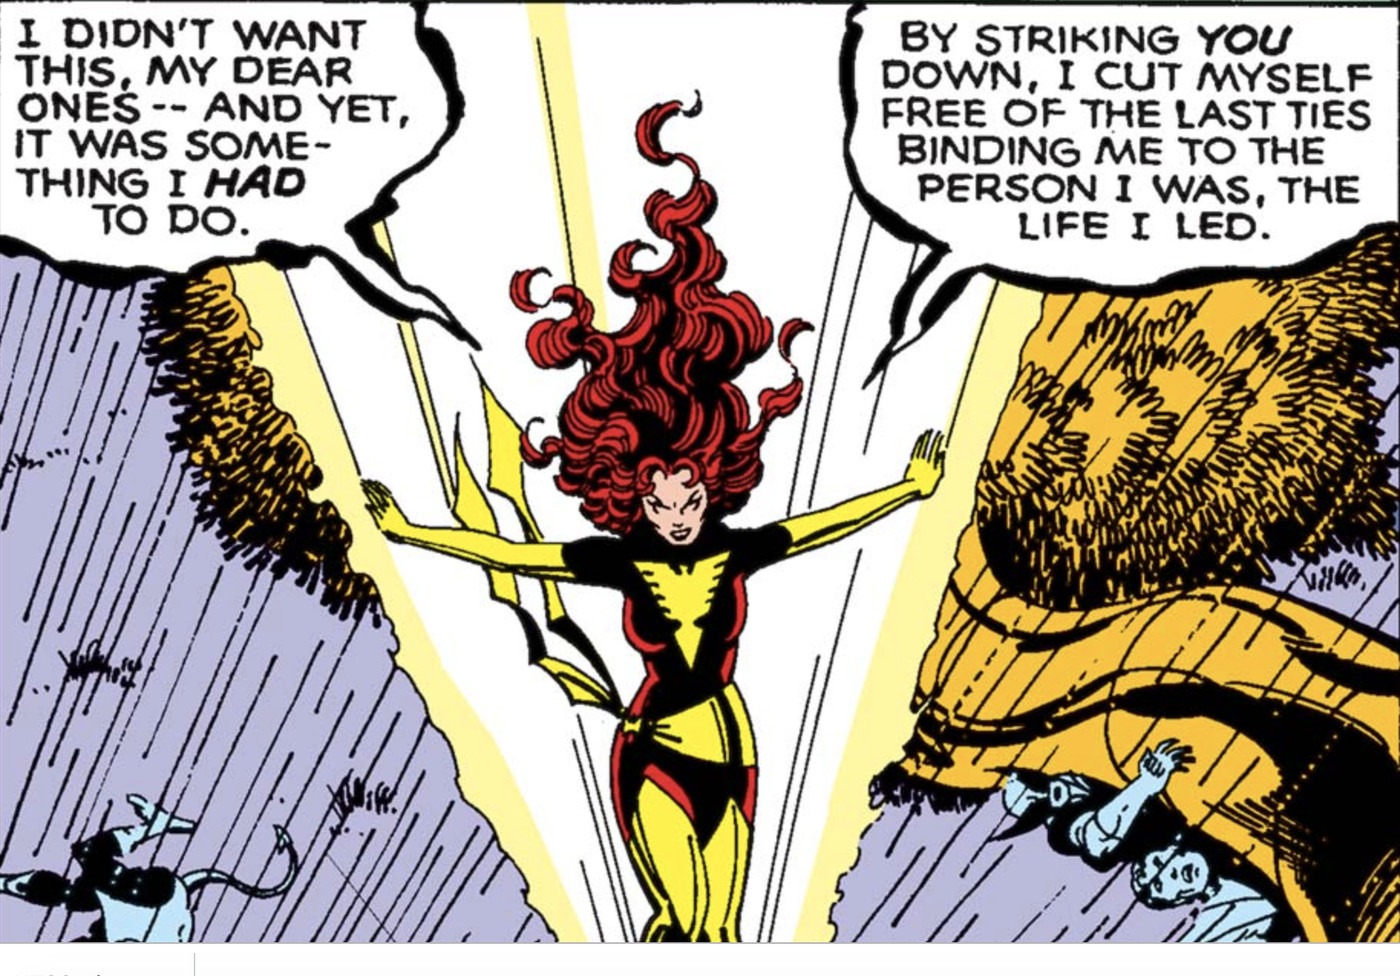 How X-Men: Dark Phoenix failed to tell the story of the X